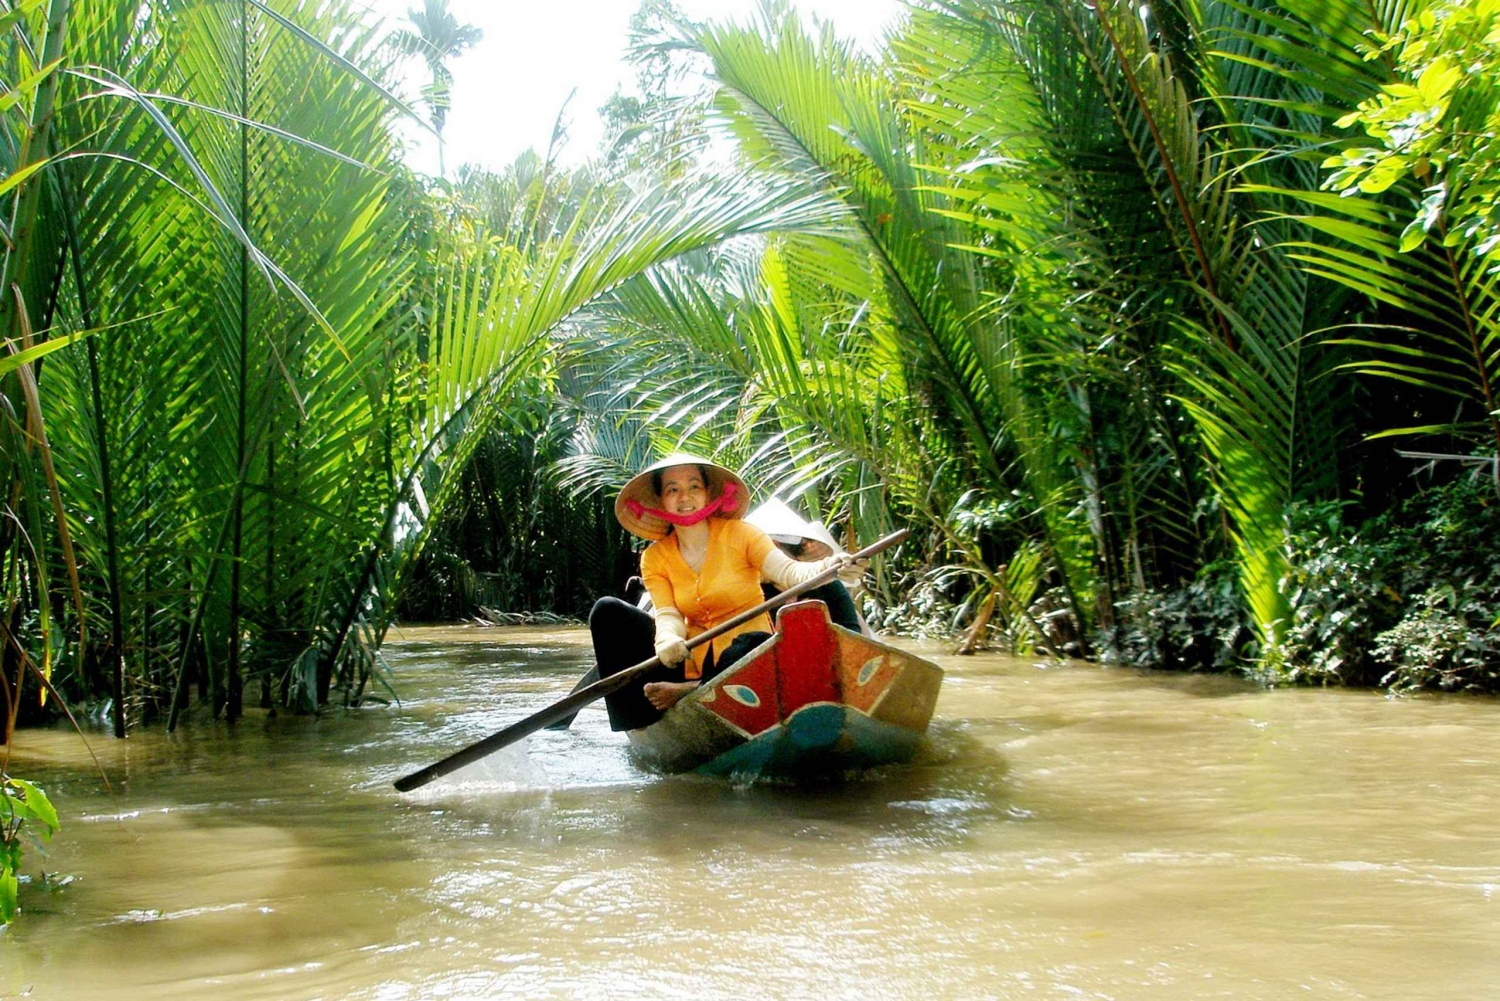 Mekong Delta: Private Tour from Ho Chi Minh